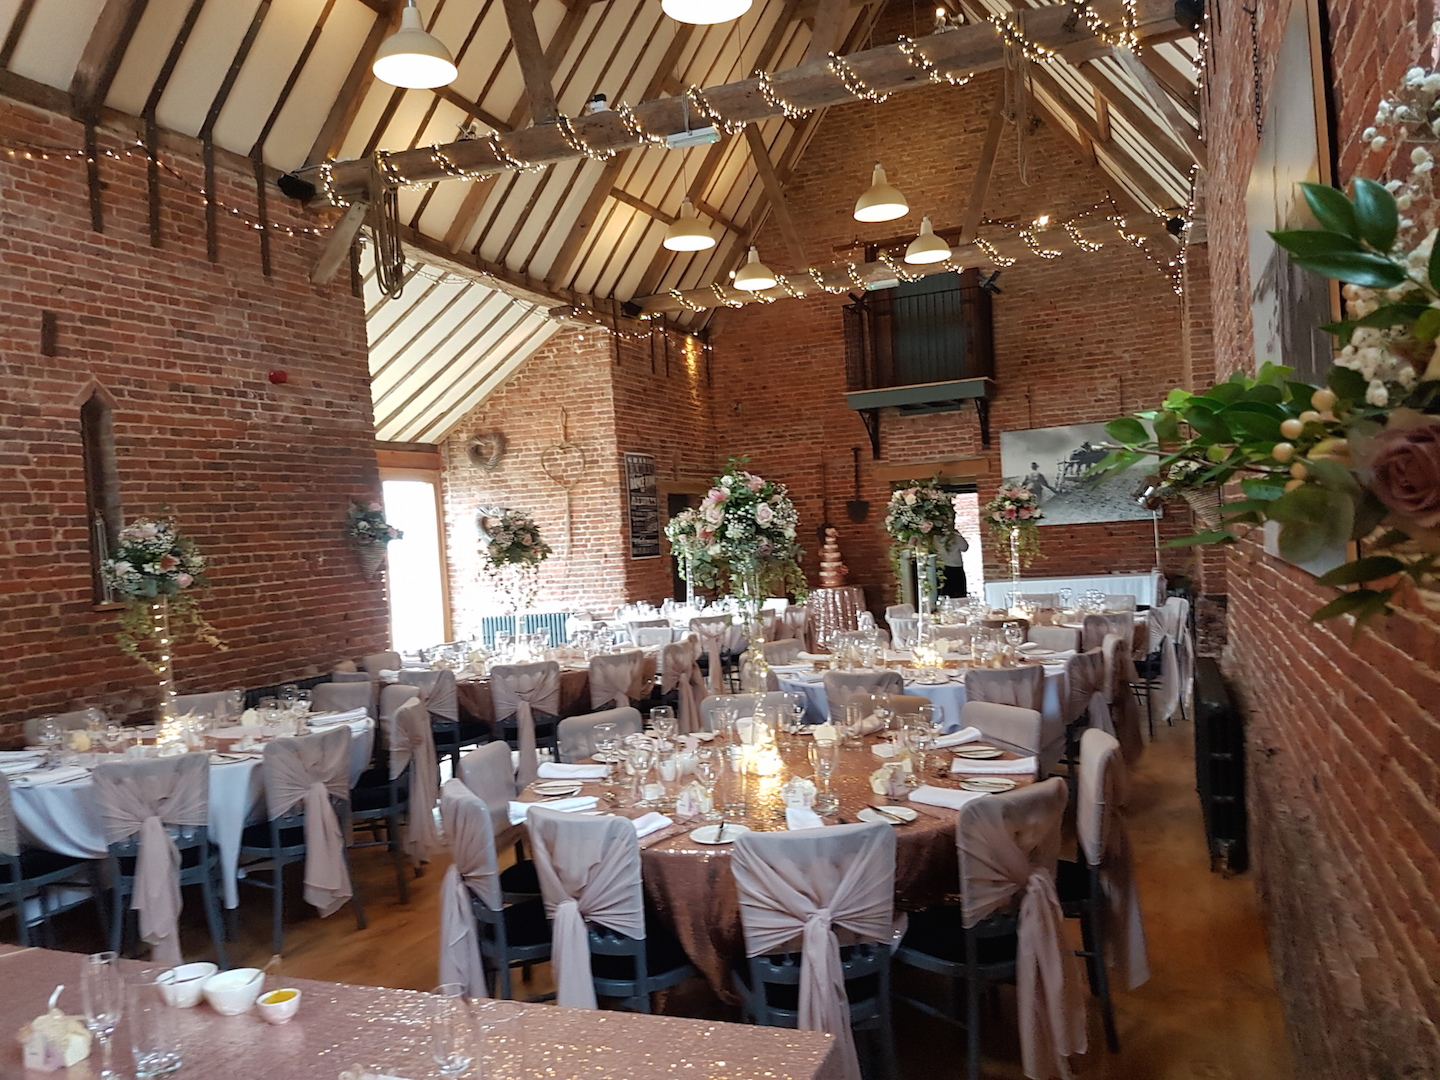 Wedding Venue The Granary at Elms Farm Cottages